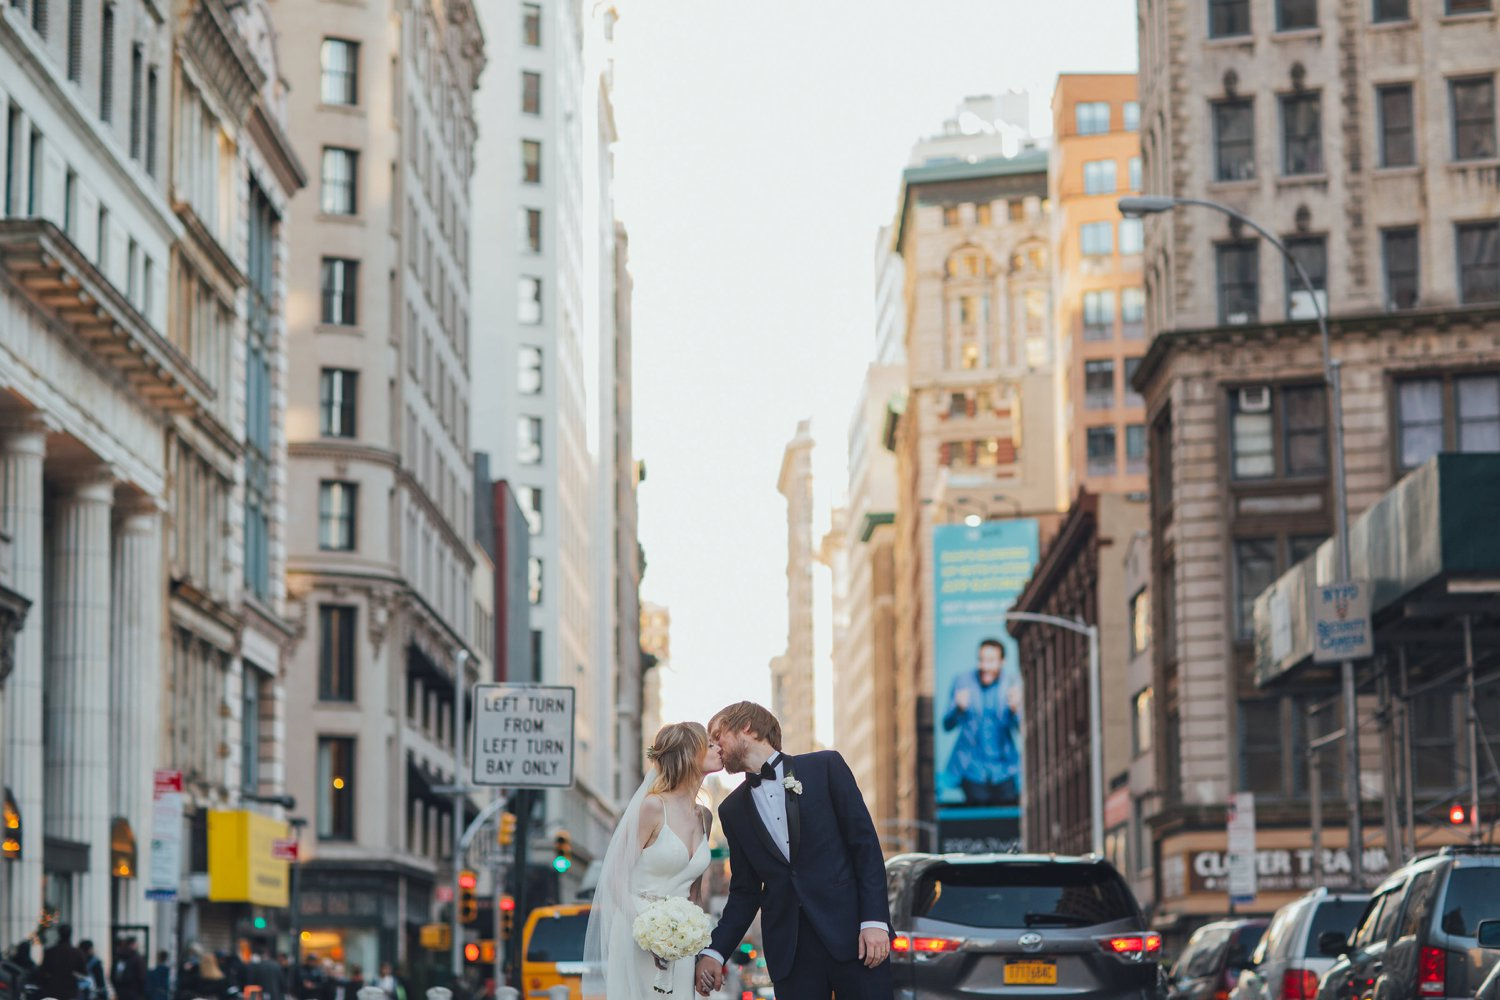 04ace-hotel-nyc-wedding-photography-by-intothestory-moo-jae_0387.jpg